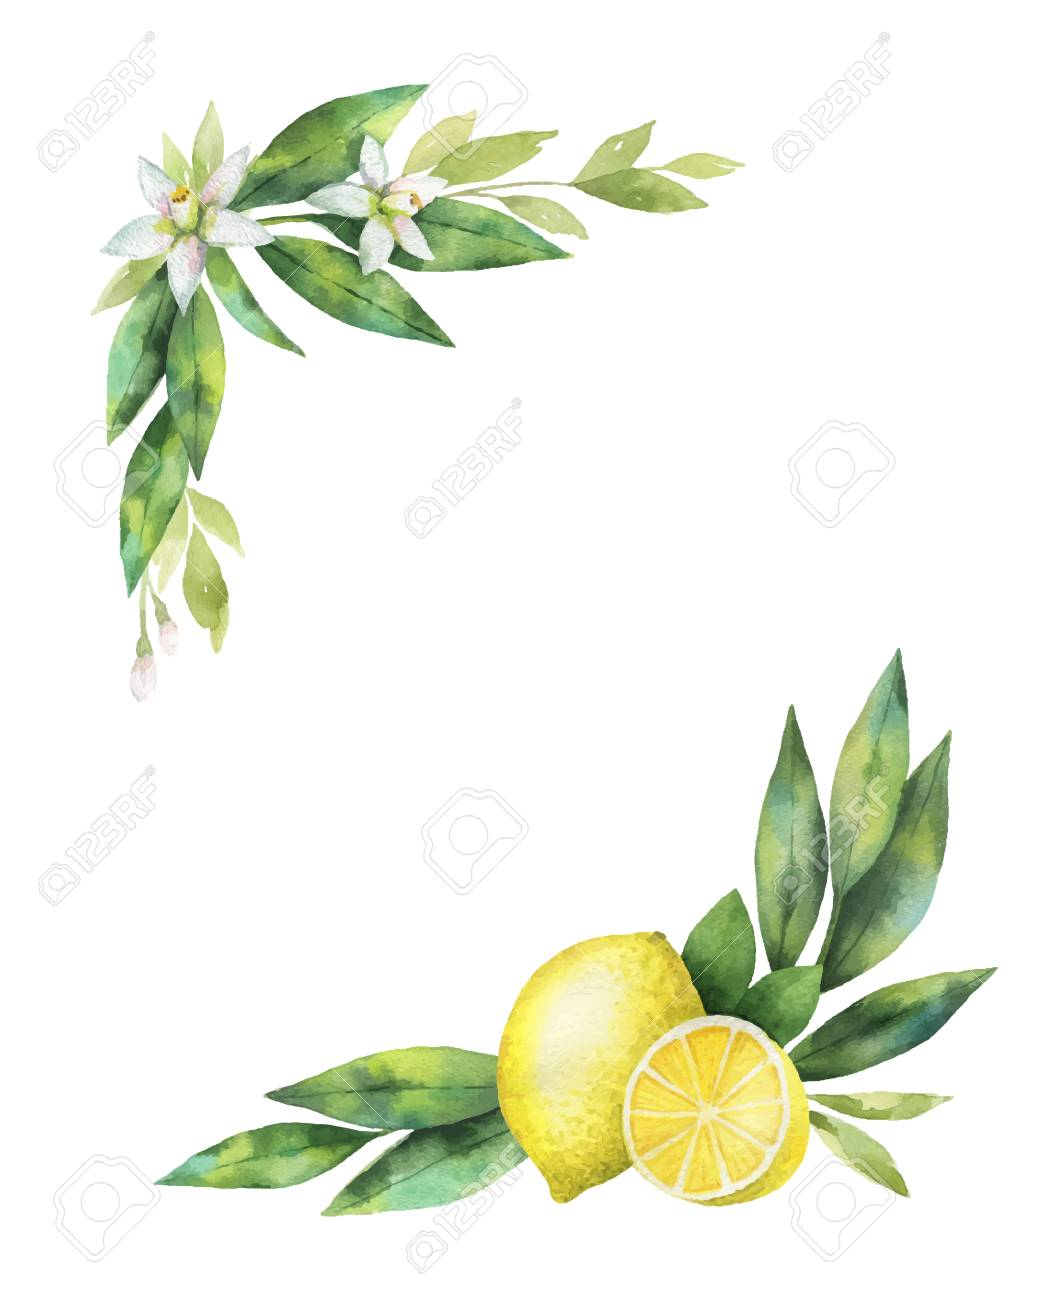 Watercolor vector hand drawn wreath with lemon and leaves. - 102164864